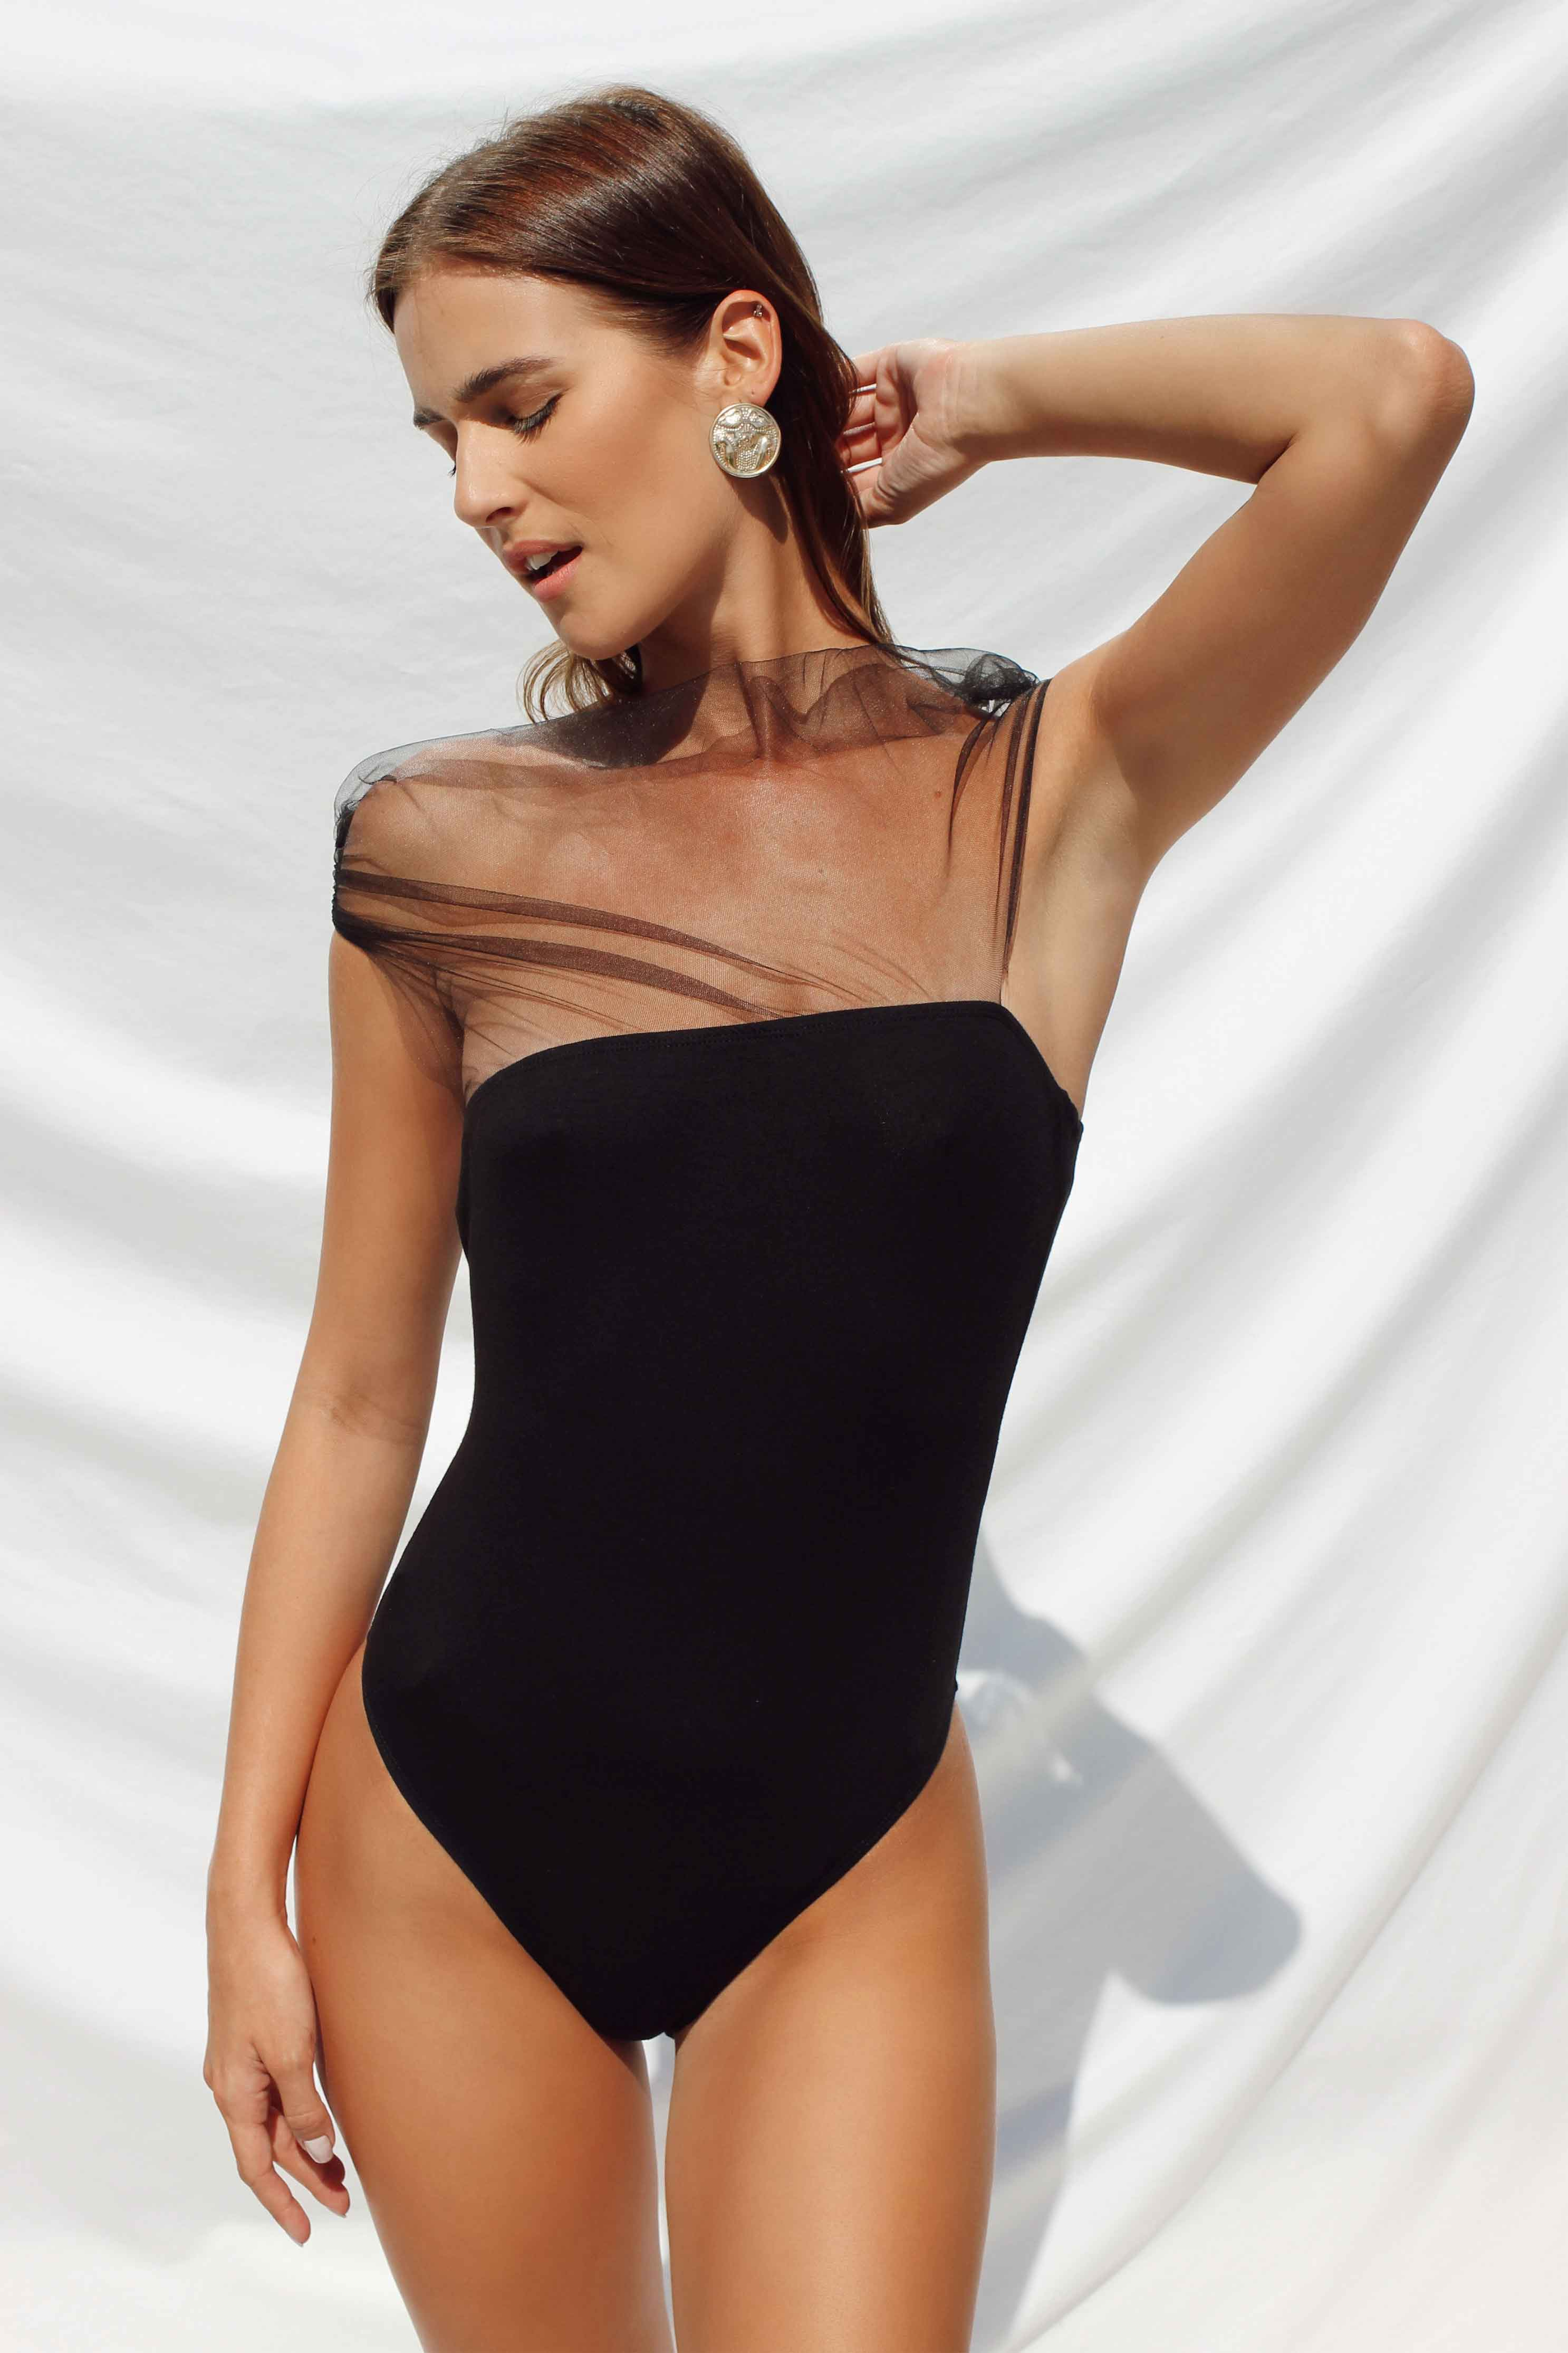 HERMOSA BODYSUIT | Women's Online Shopping | CHICLEFRIQUE